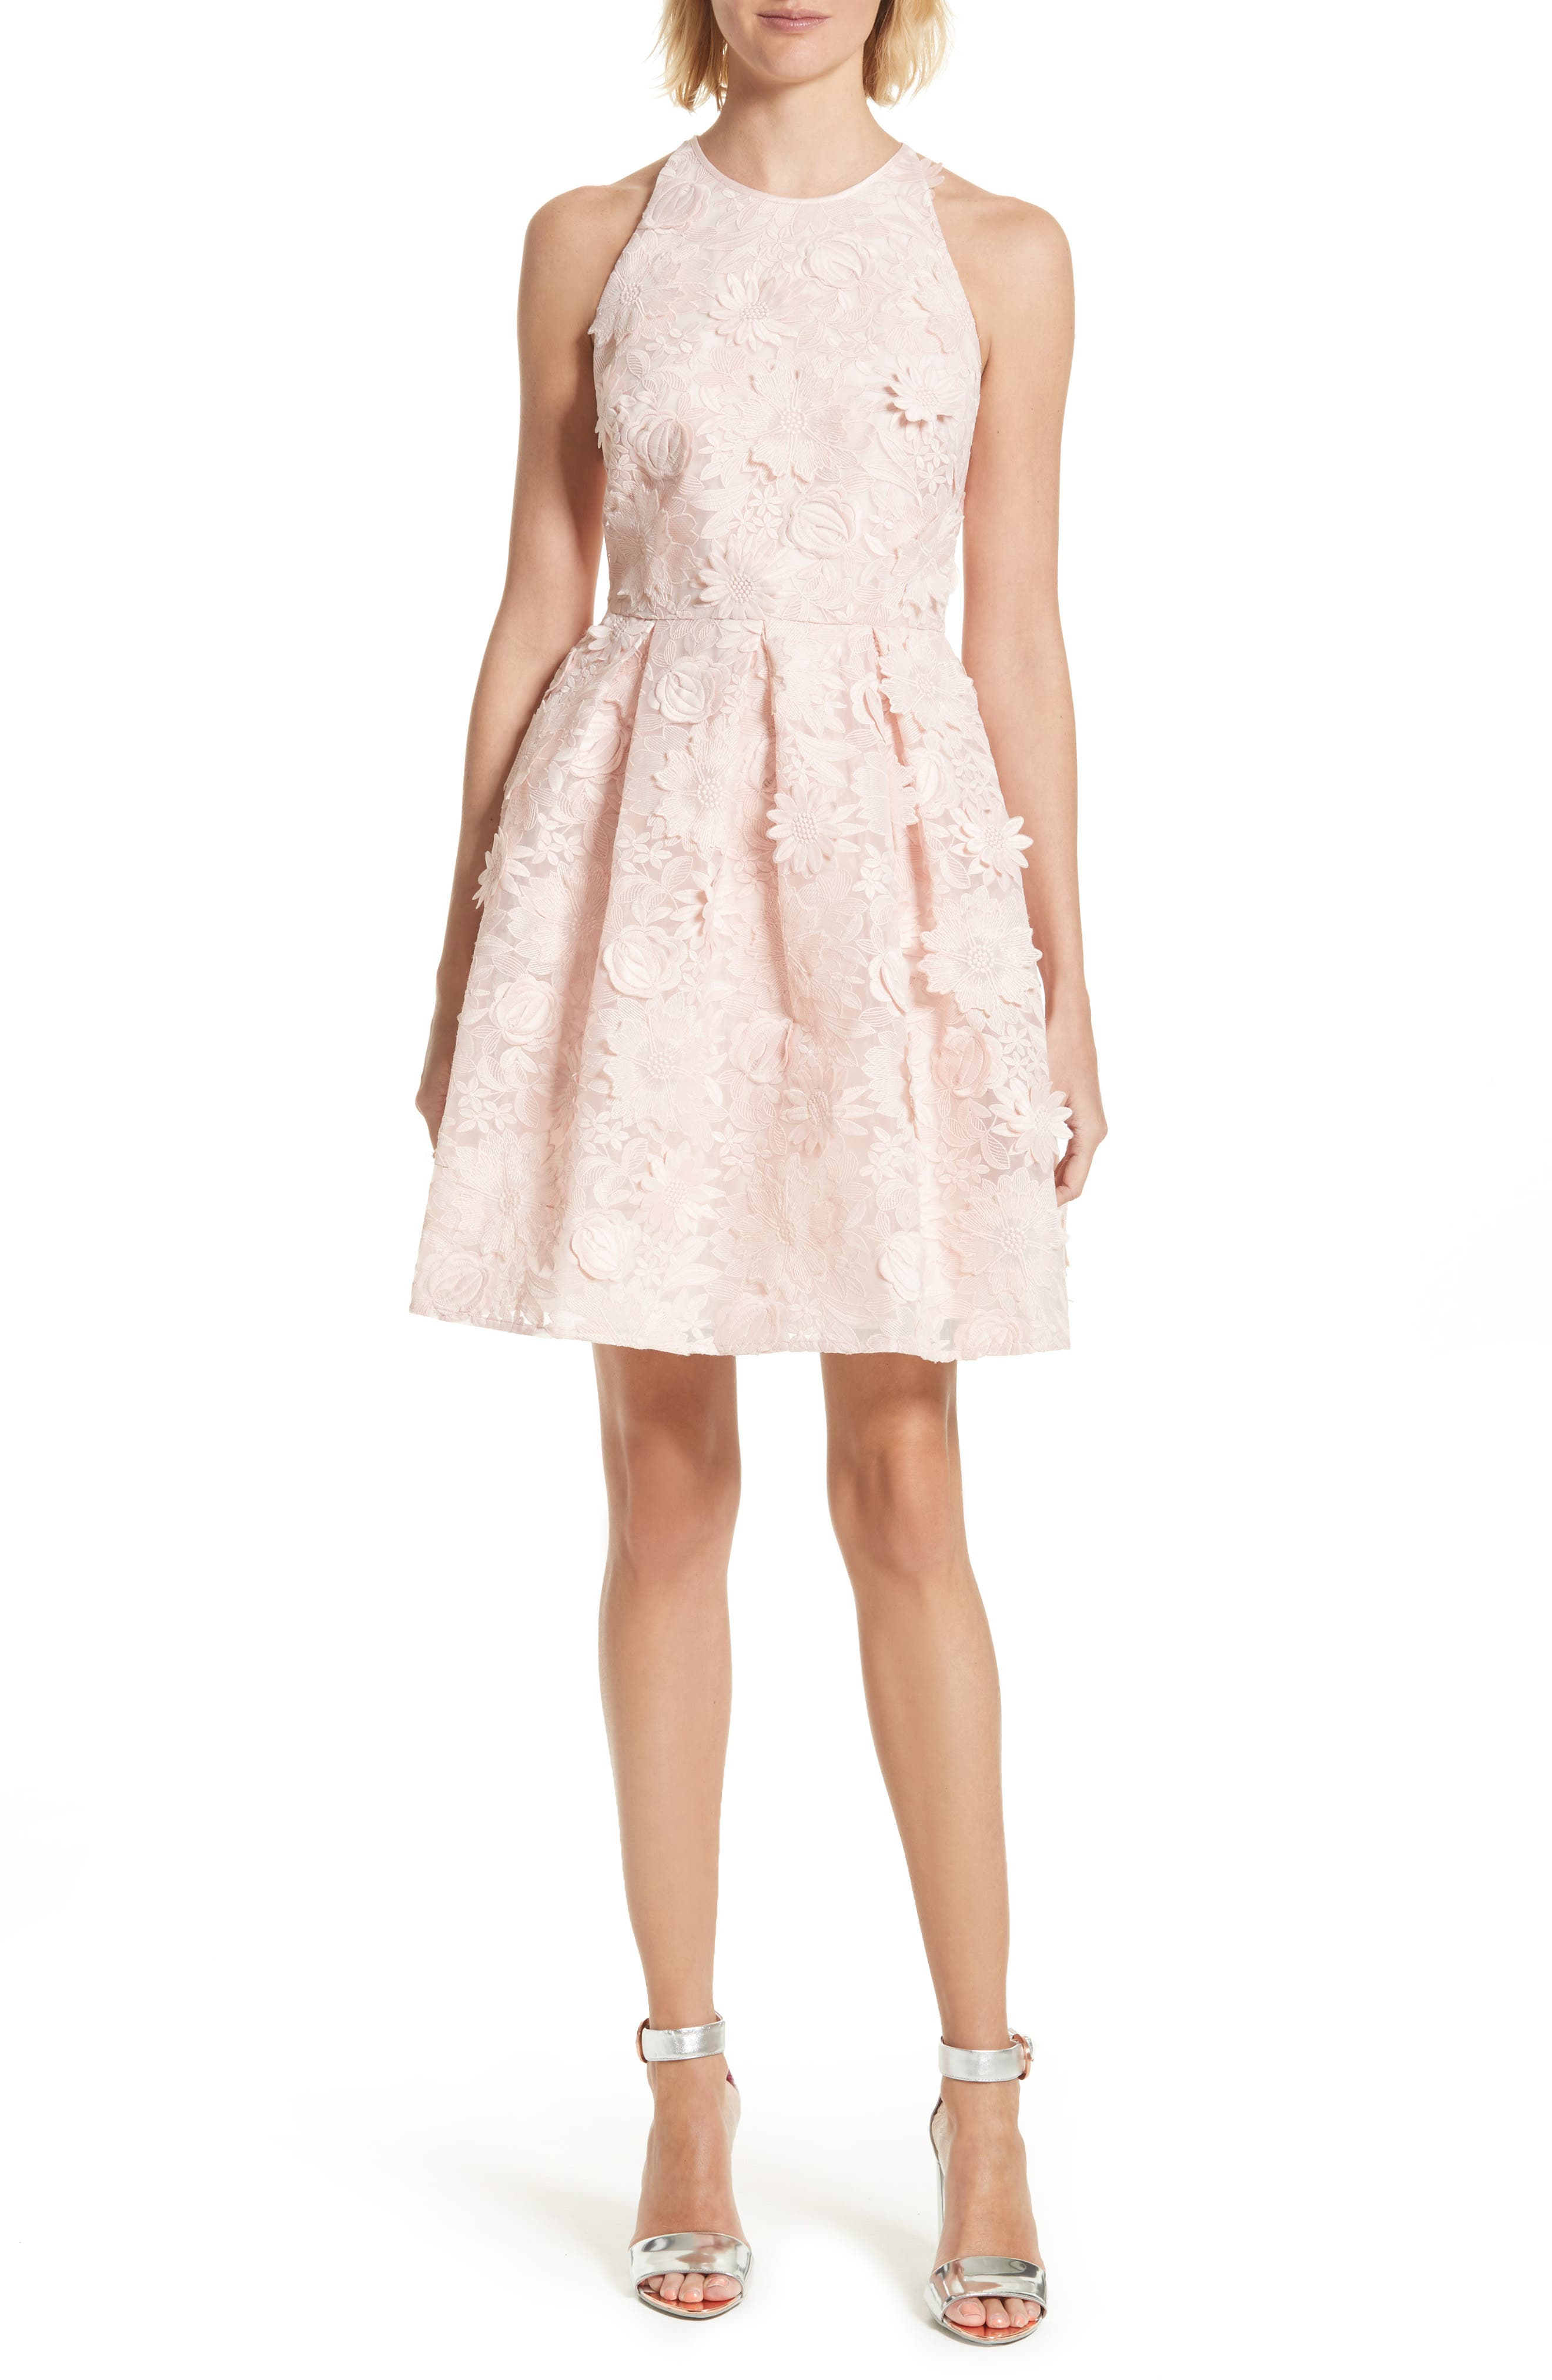 Sweetee Lace Skater Dress,                             Main thumbnail 1, color,                             682